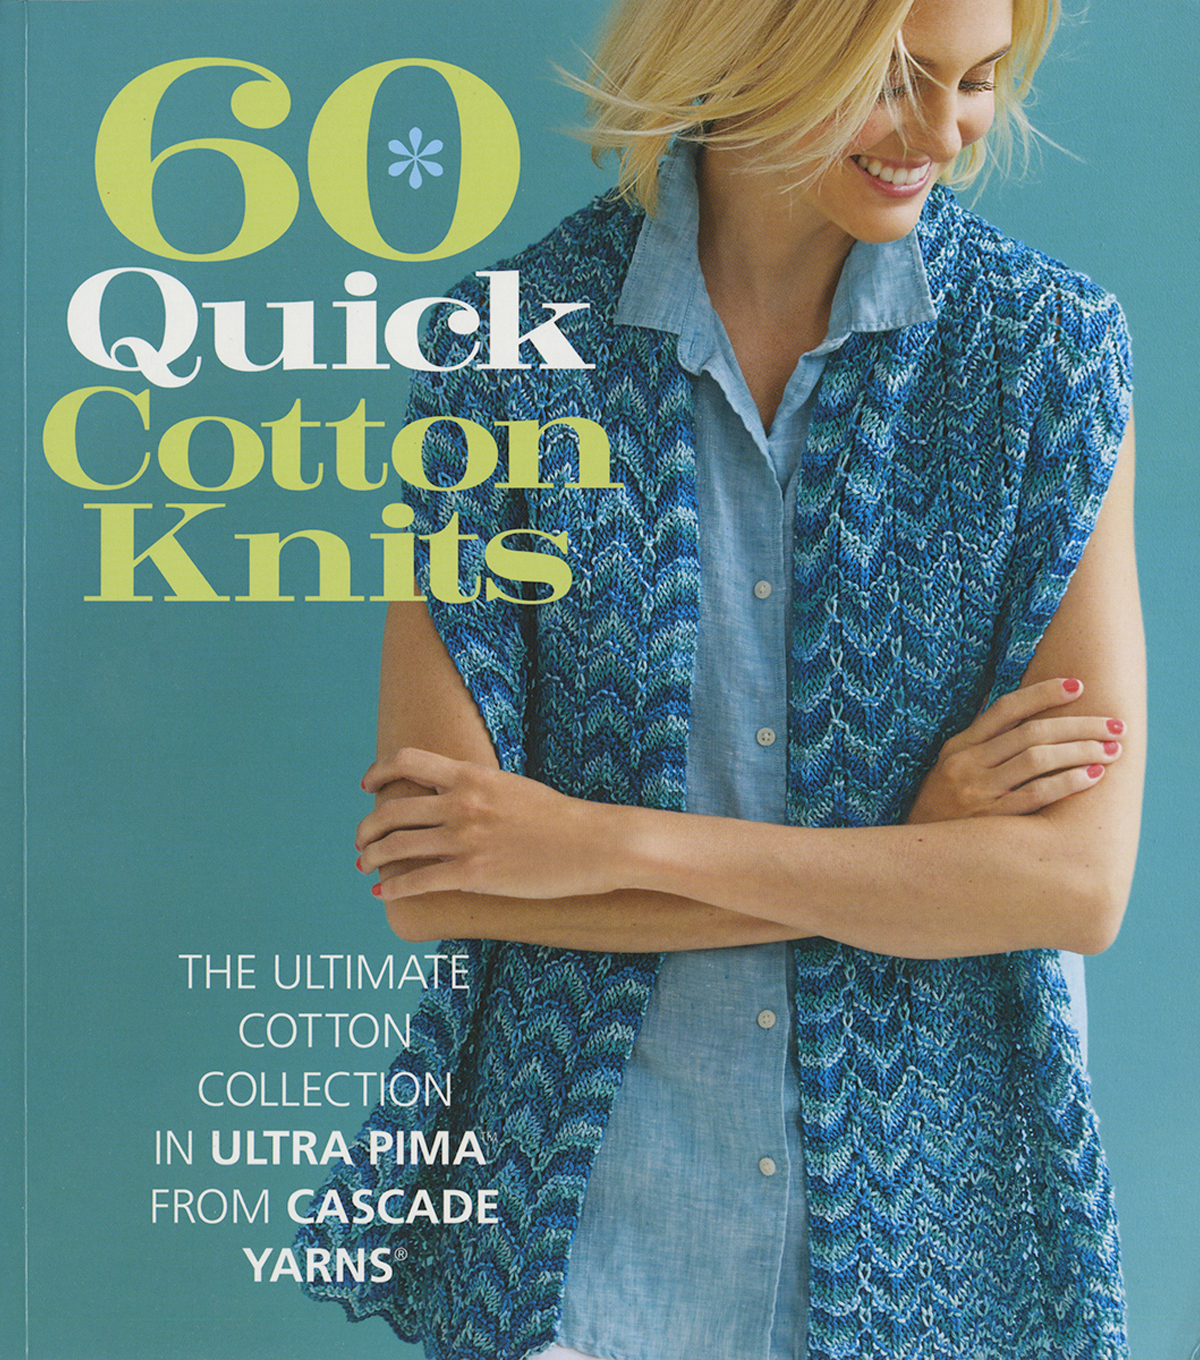 60 Quick Cotton Knits Book